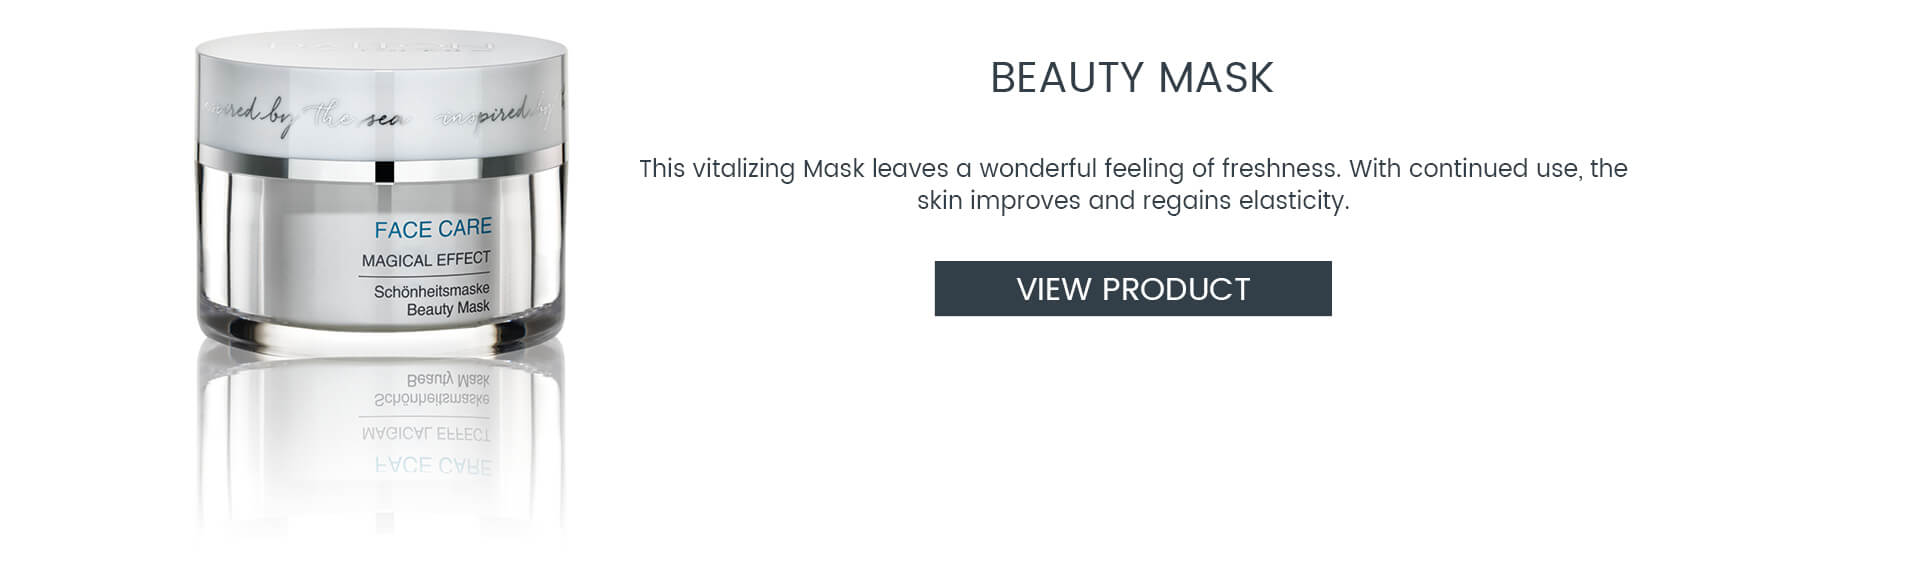 Refreshing Beauty Mask for all skin types